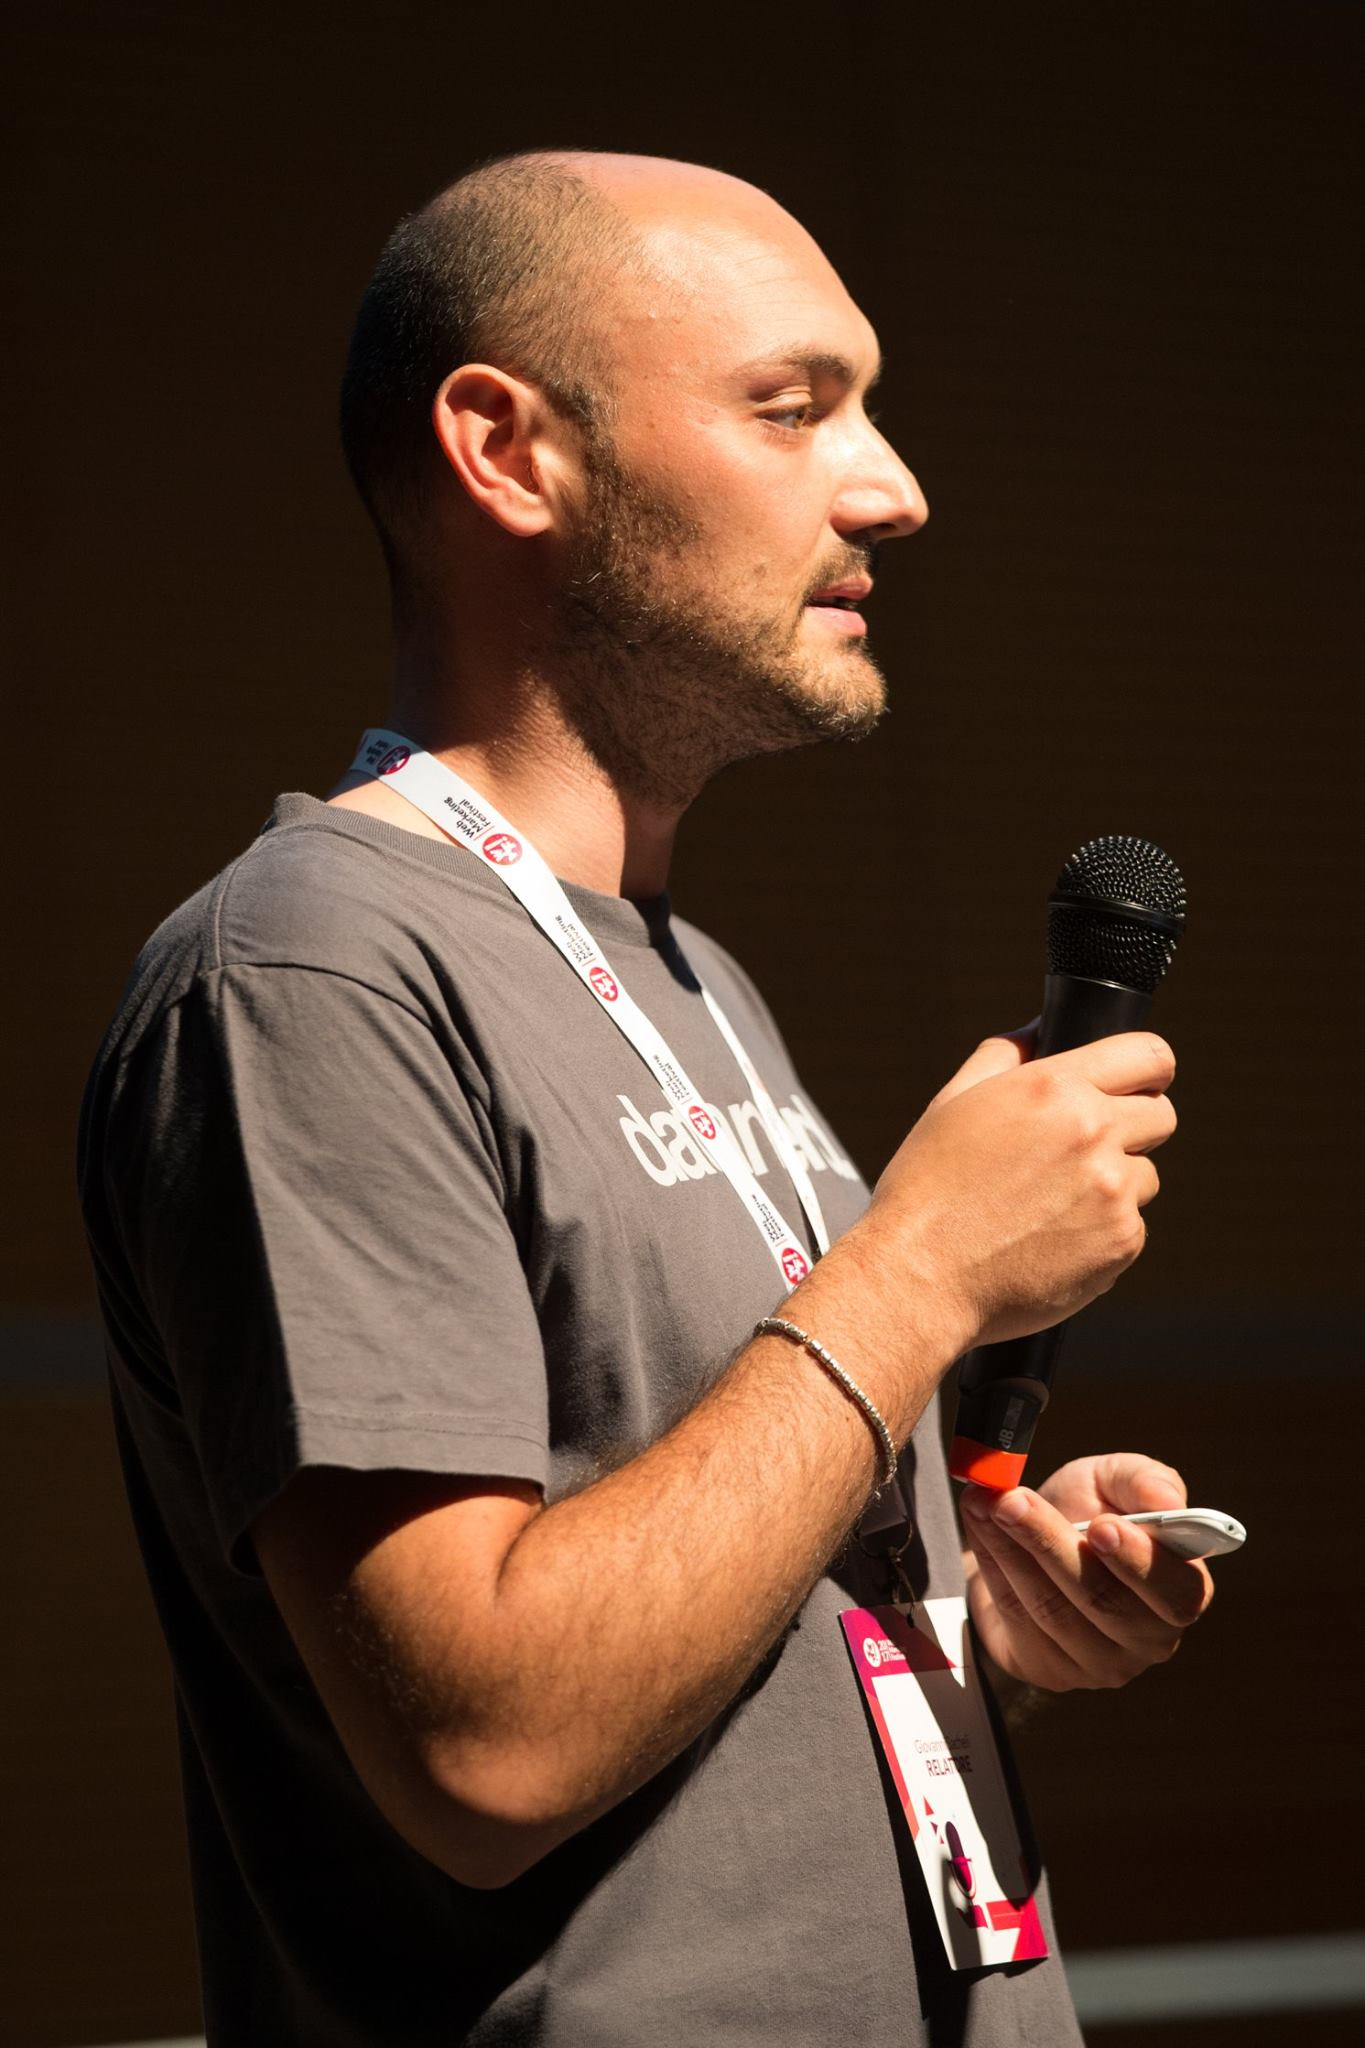 Giovanni Sacheli al Web Marketing Festival 2017